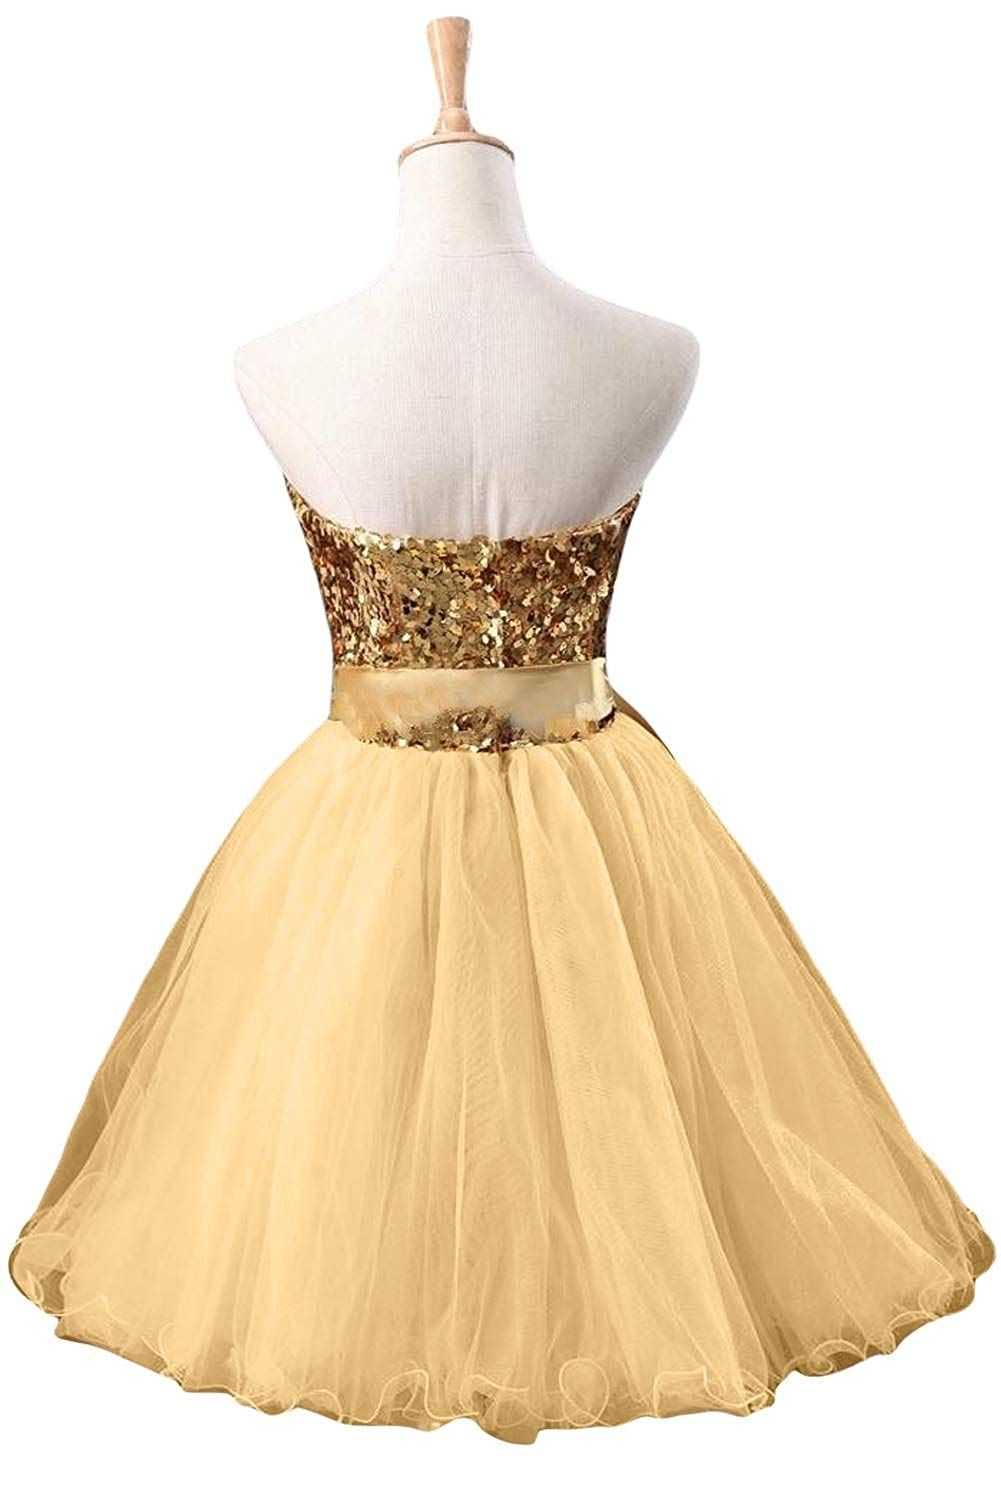 Girls wedding dress  Sunvary Gold Sequin and Tulle Cocktail Prom Dresses Girls Bridesmaid